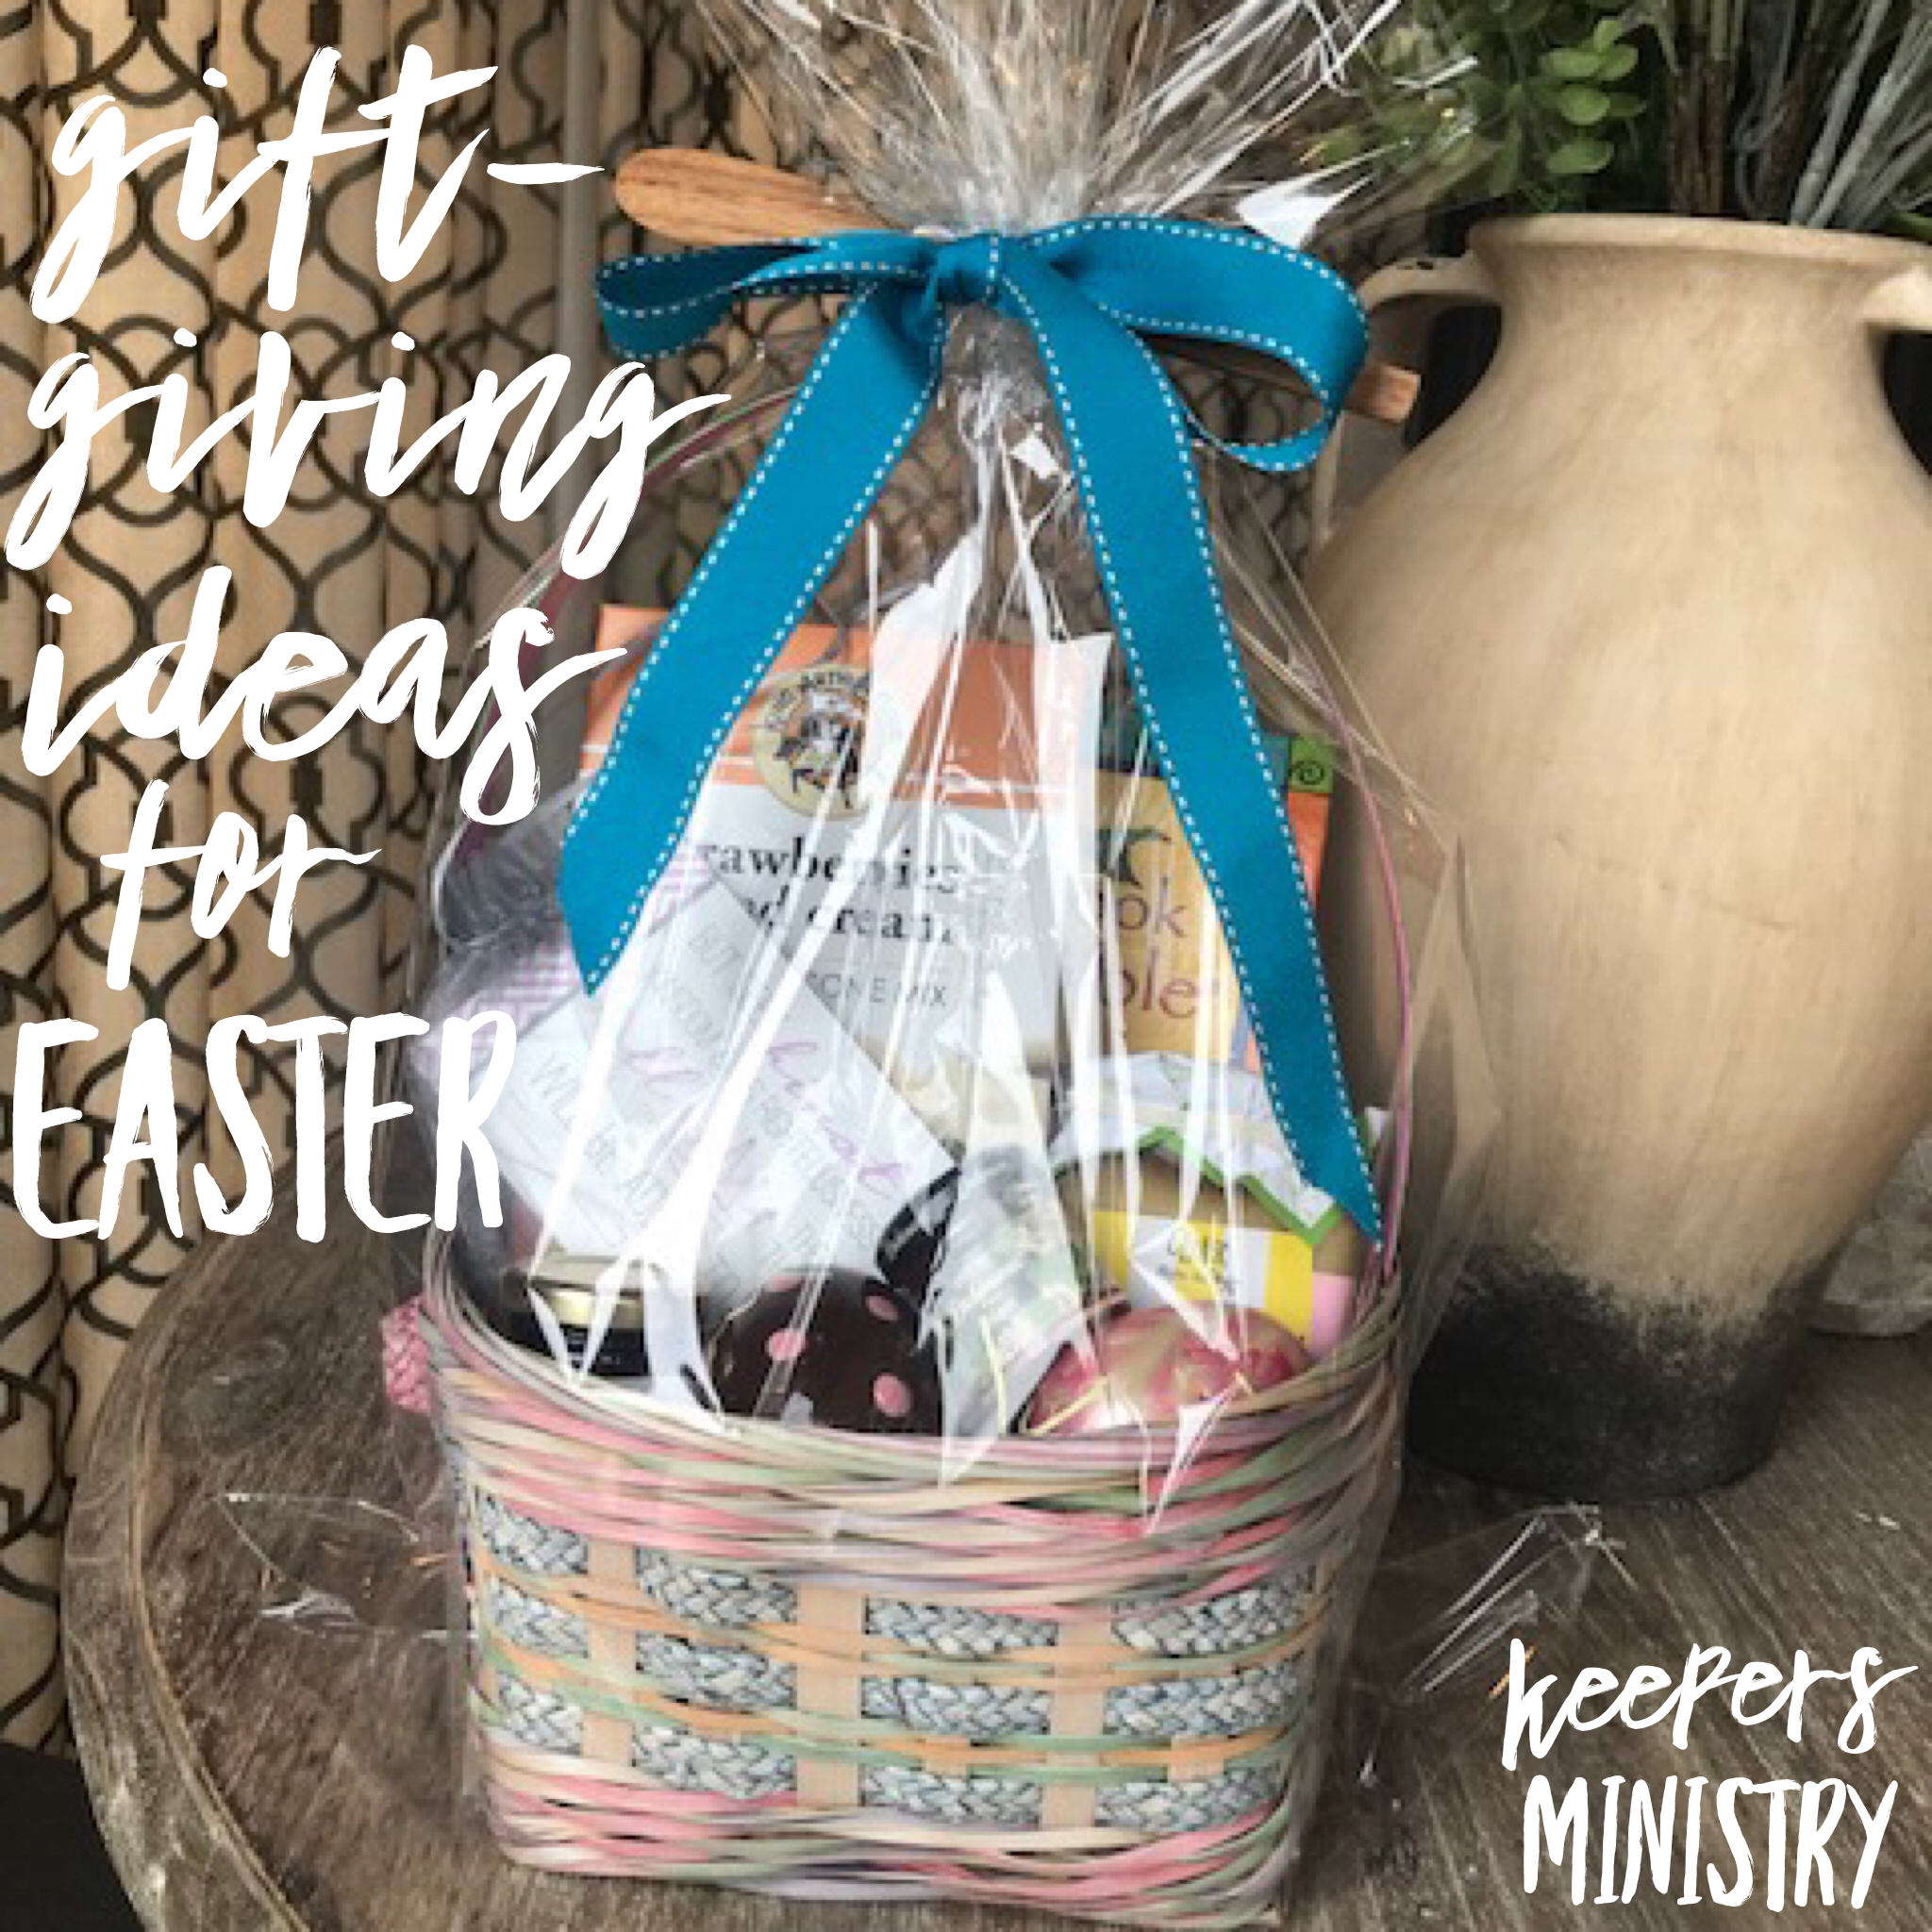 Gift giving ideas for easter keepers ministry story of jesus resurrection how about taking a moment right now to ask the lord who in your life needs to receive an expression of love from you in negle Choice Image